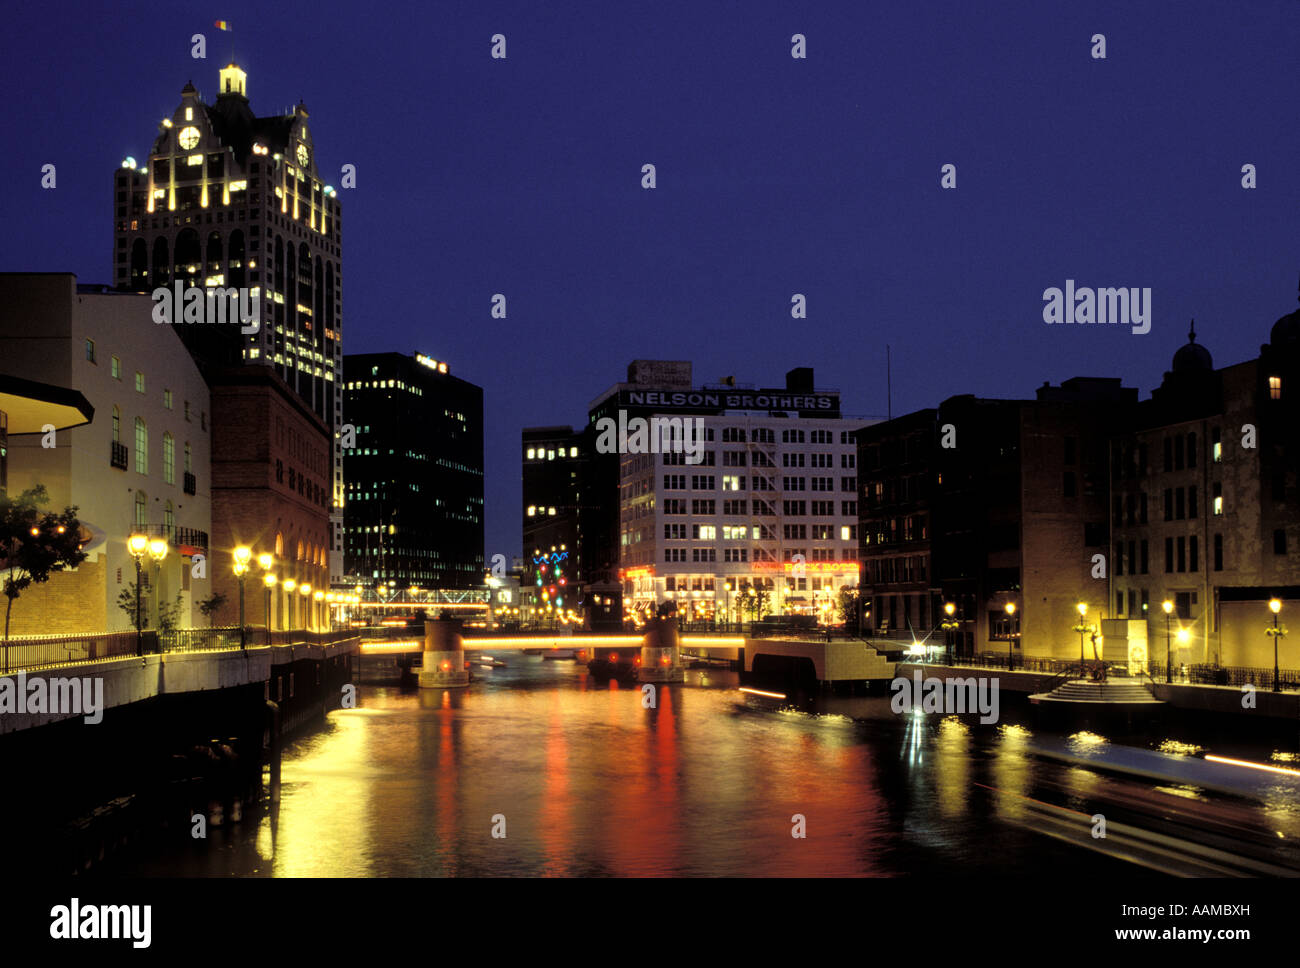 MILWAUKEE WI DOWNTOWN AT NIGHT RIVER PROMENADES Photo Stock